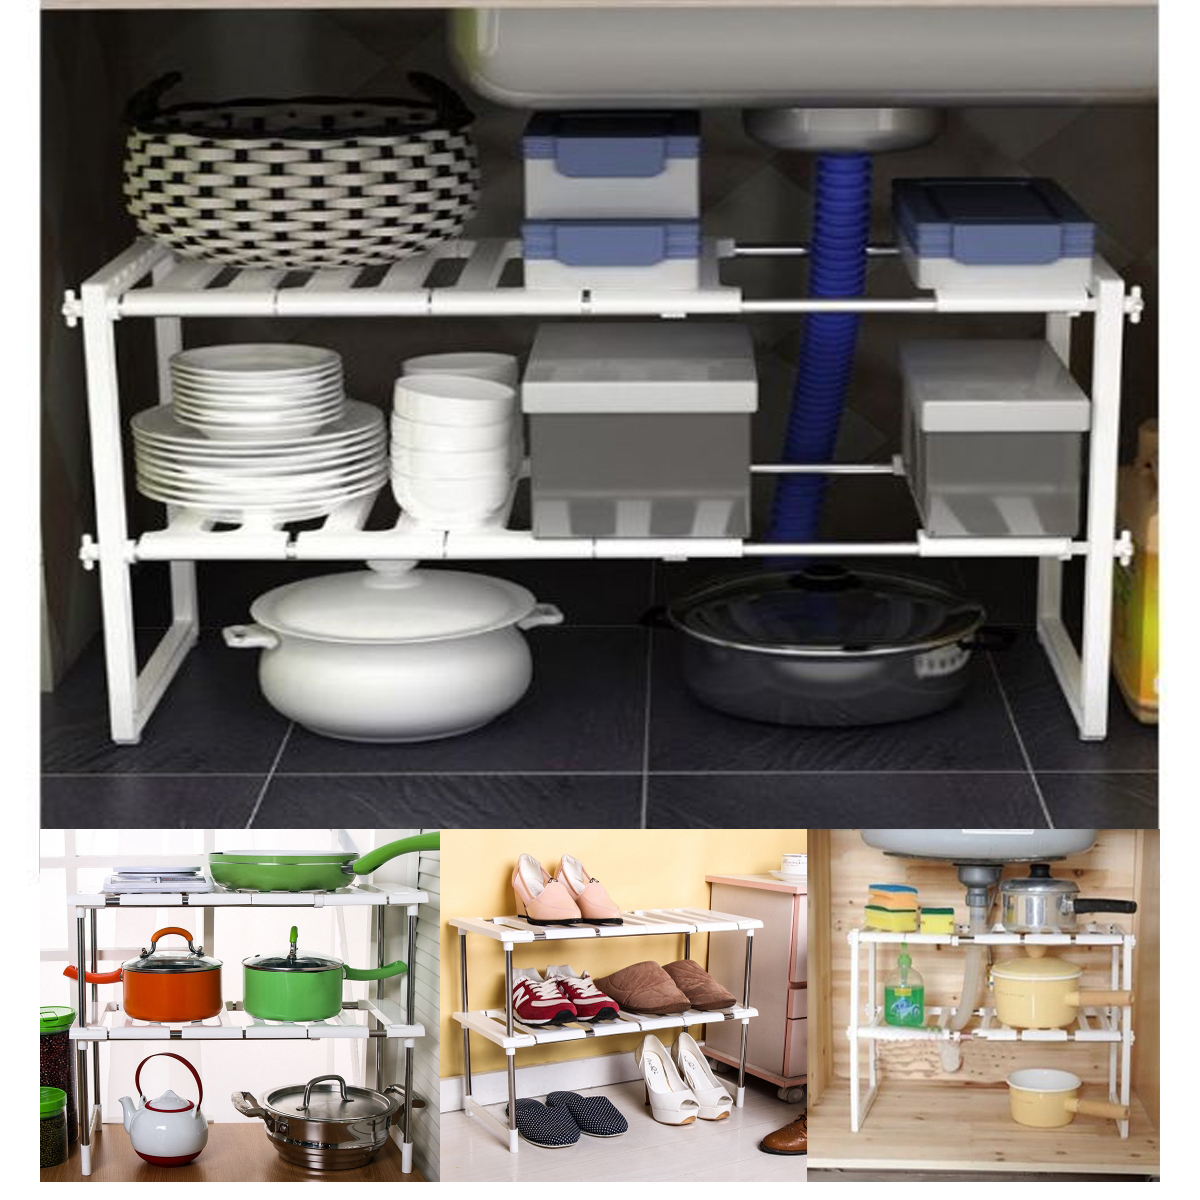 Under Sink Kitchen Rack Organiser Adjustable Shoe Storage